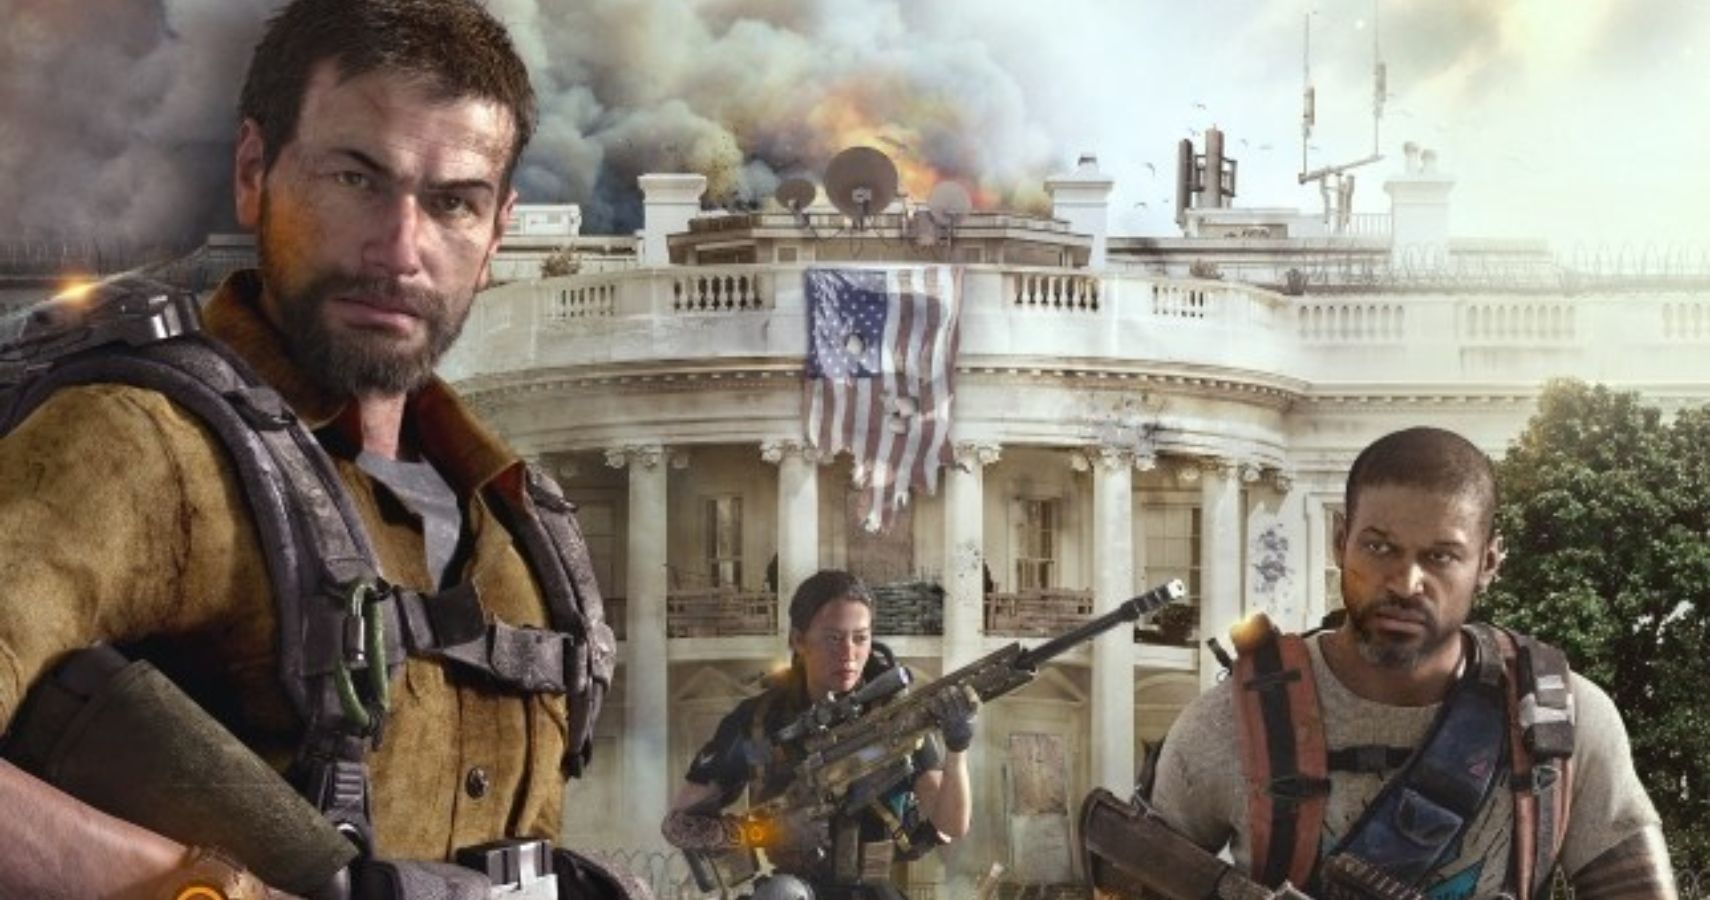 Ubisoft Claims The Division 2 Is 2019's Biggest Hit Worldwide But Won't Release Sales Numbers